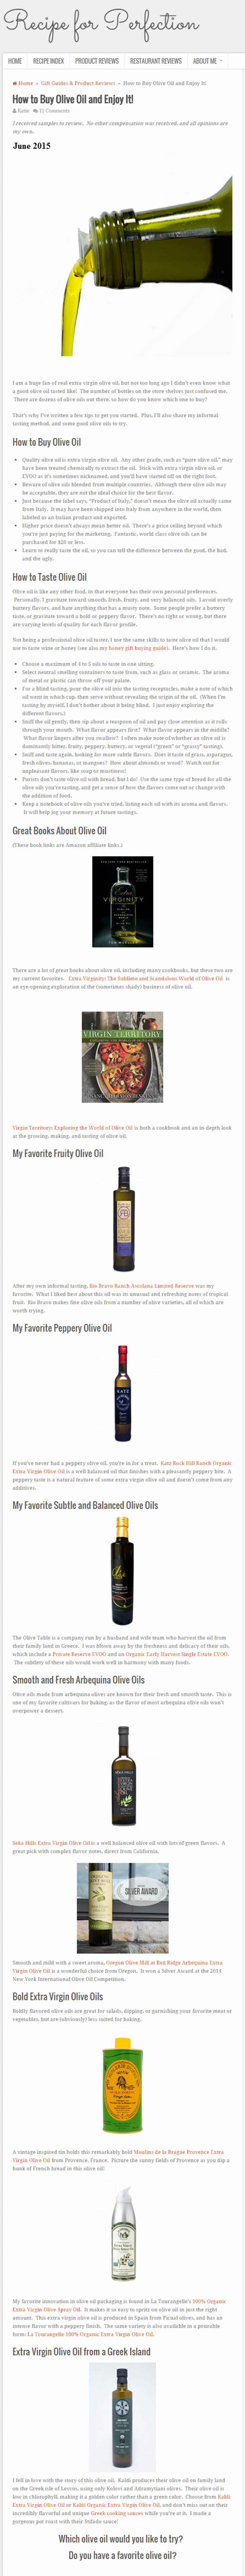 Buying Olive Oil - Recipe for Perfection - June 2015